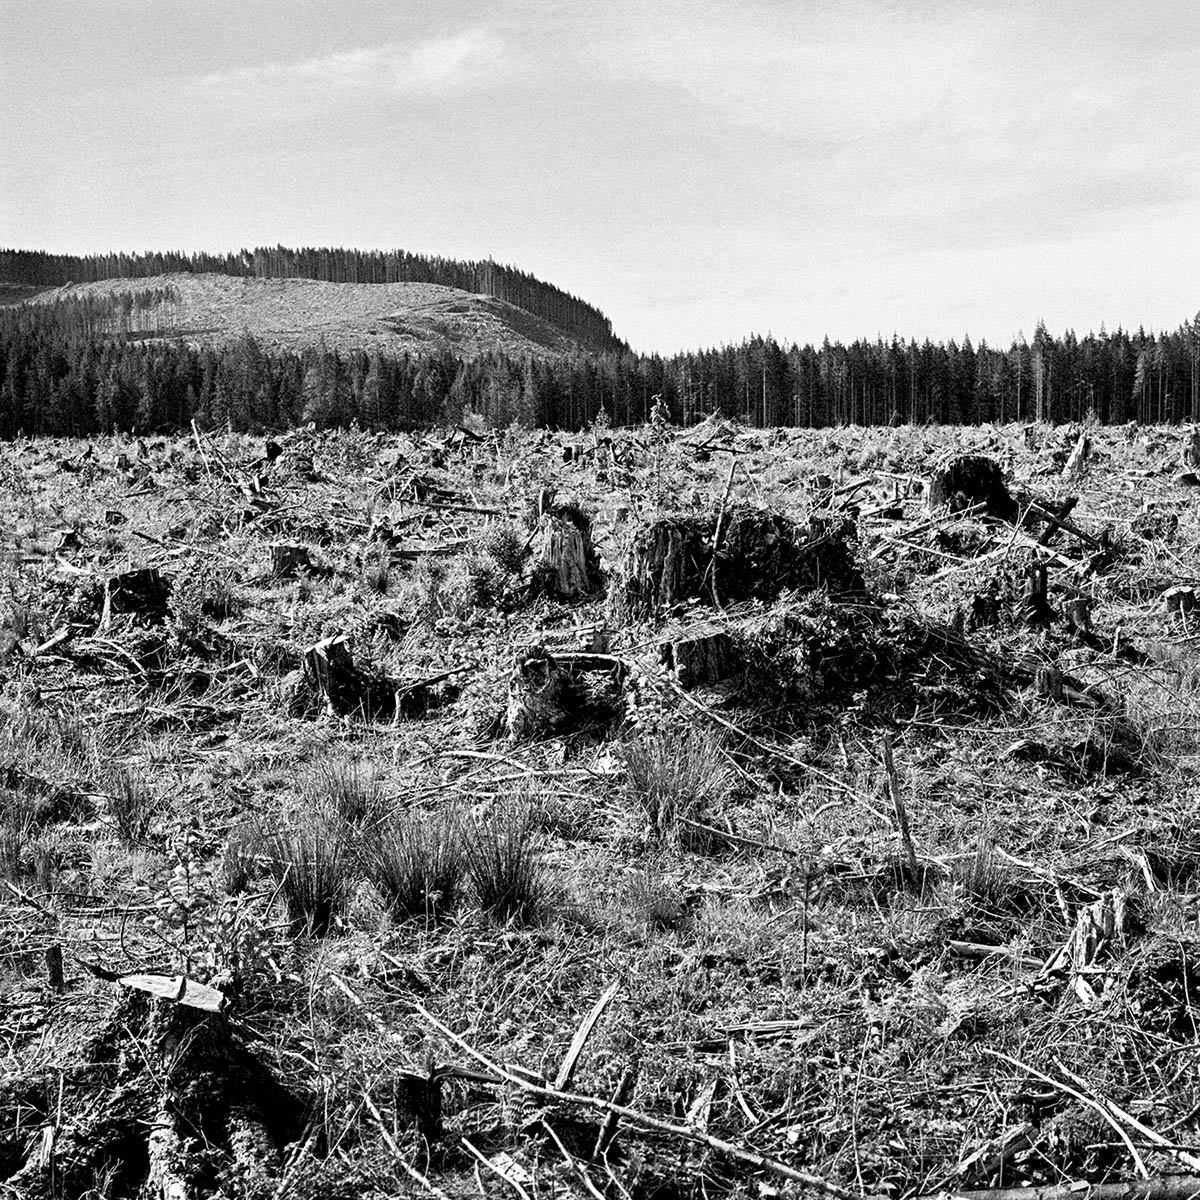 Clear Cut, Olympic Peninsula, Washington, 1996